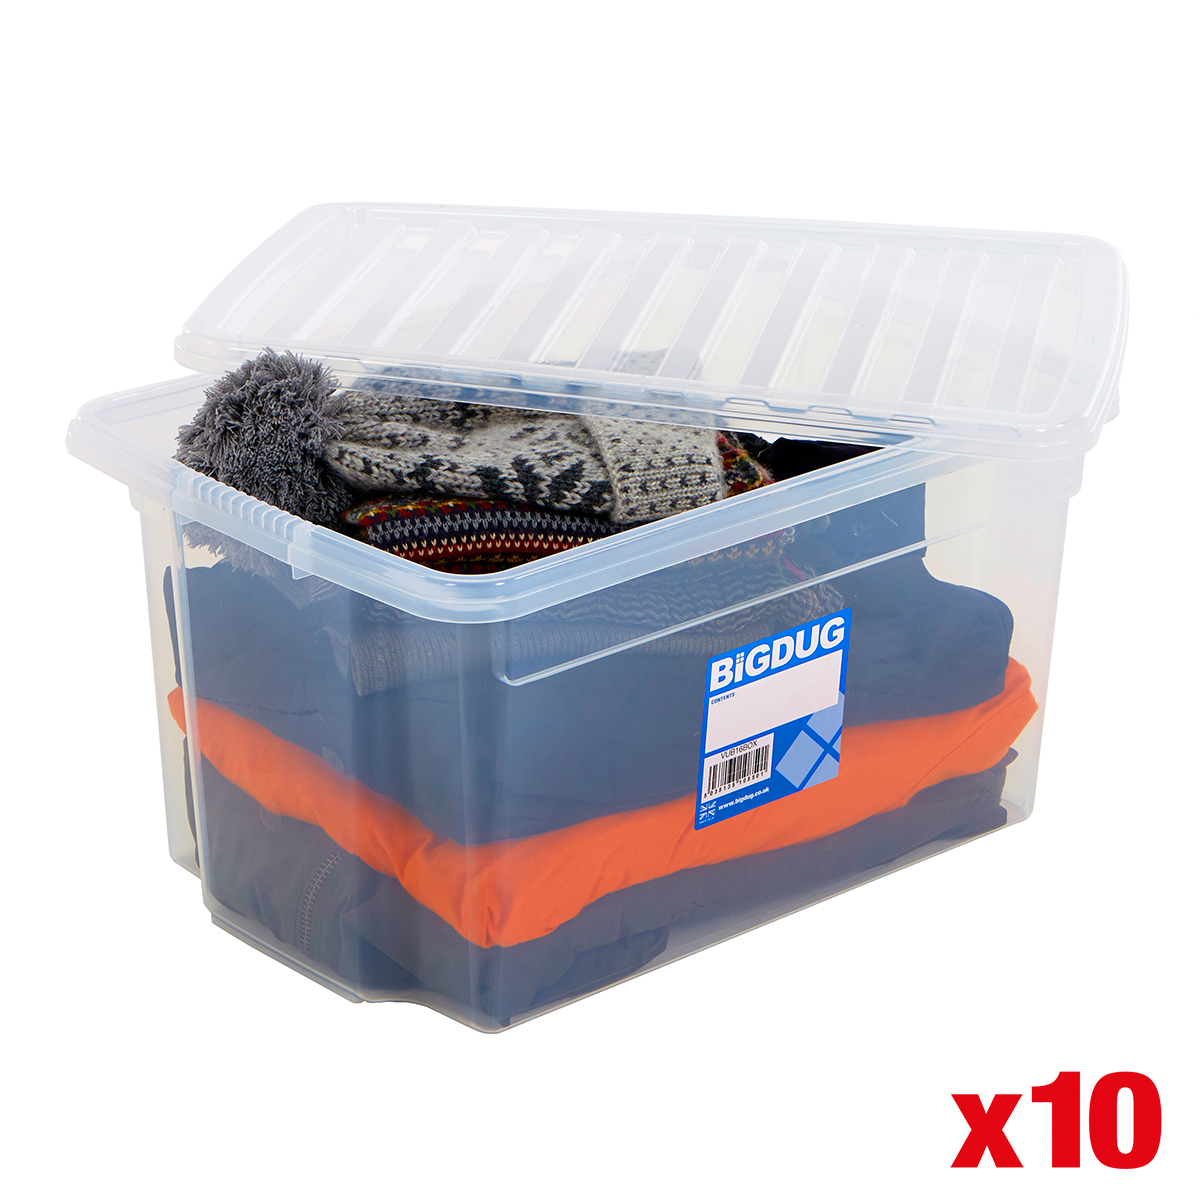 Acrylic Box 4 X 4 : Plastic storage boxes large containers with lid clear